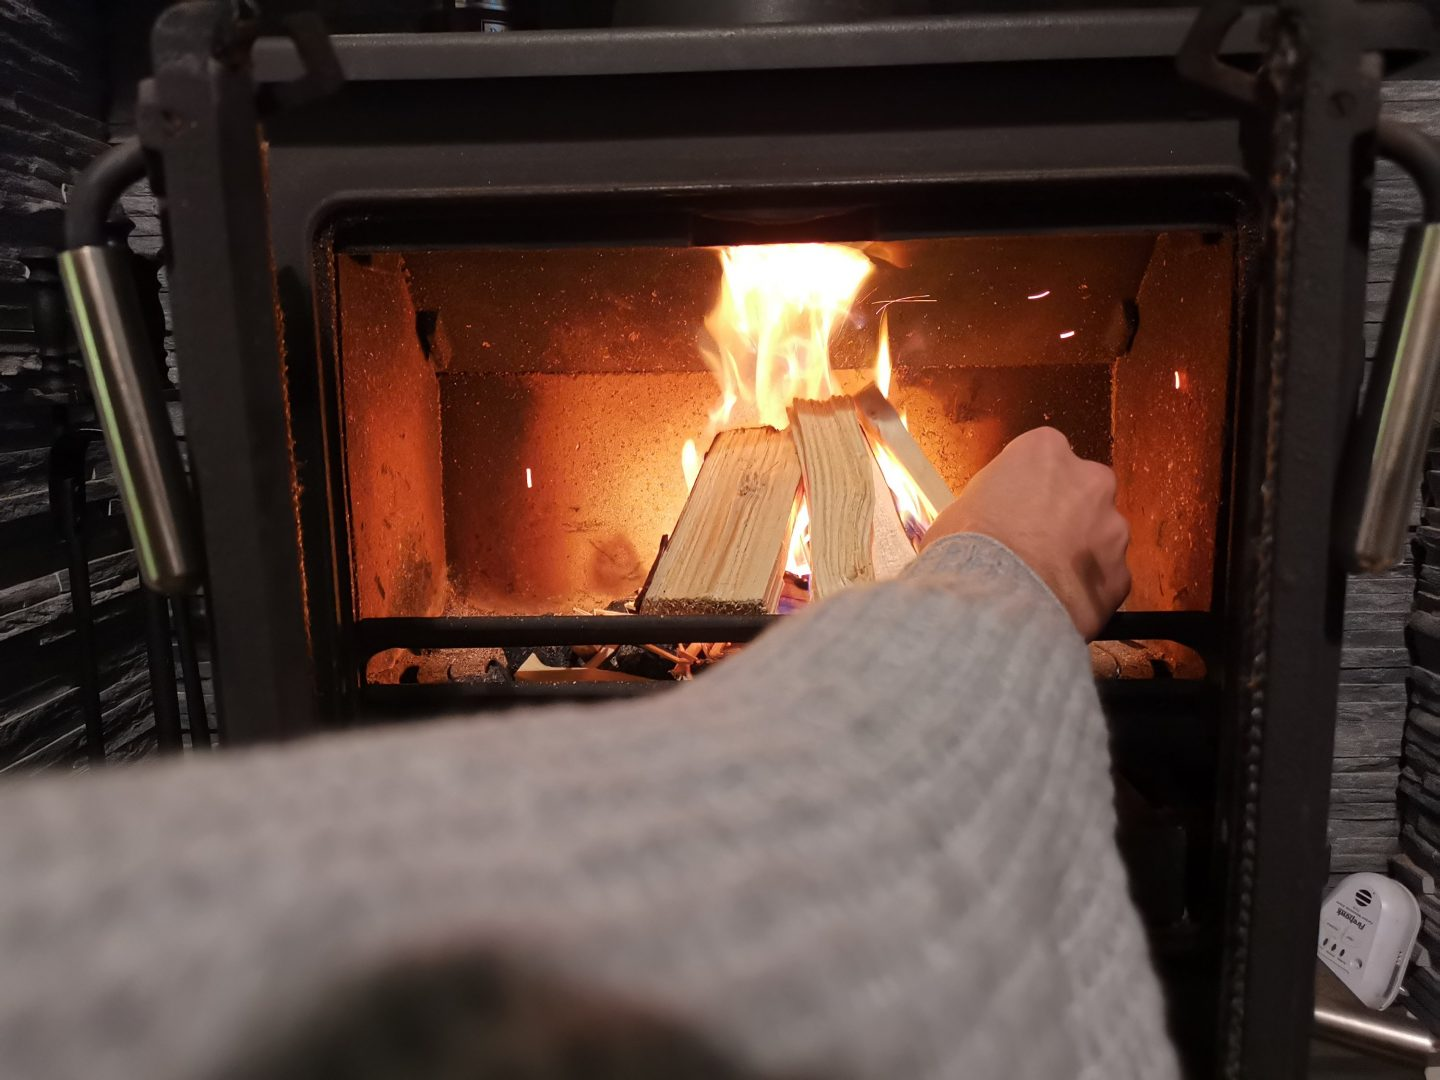 Grandiose_Days - maintain and care for log burner